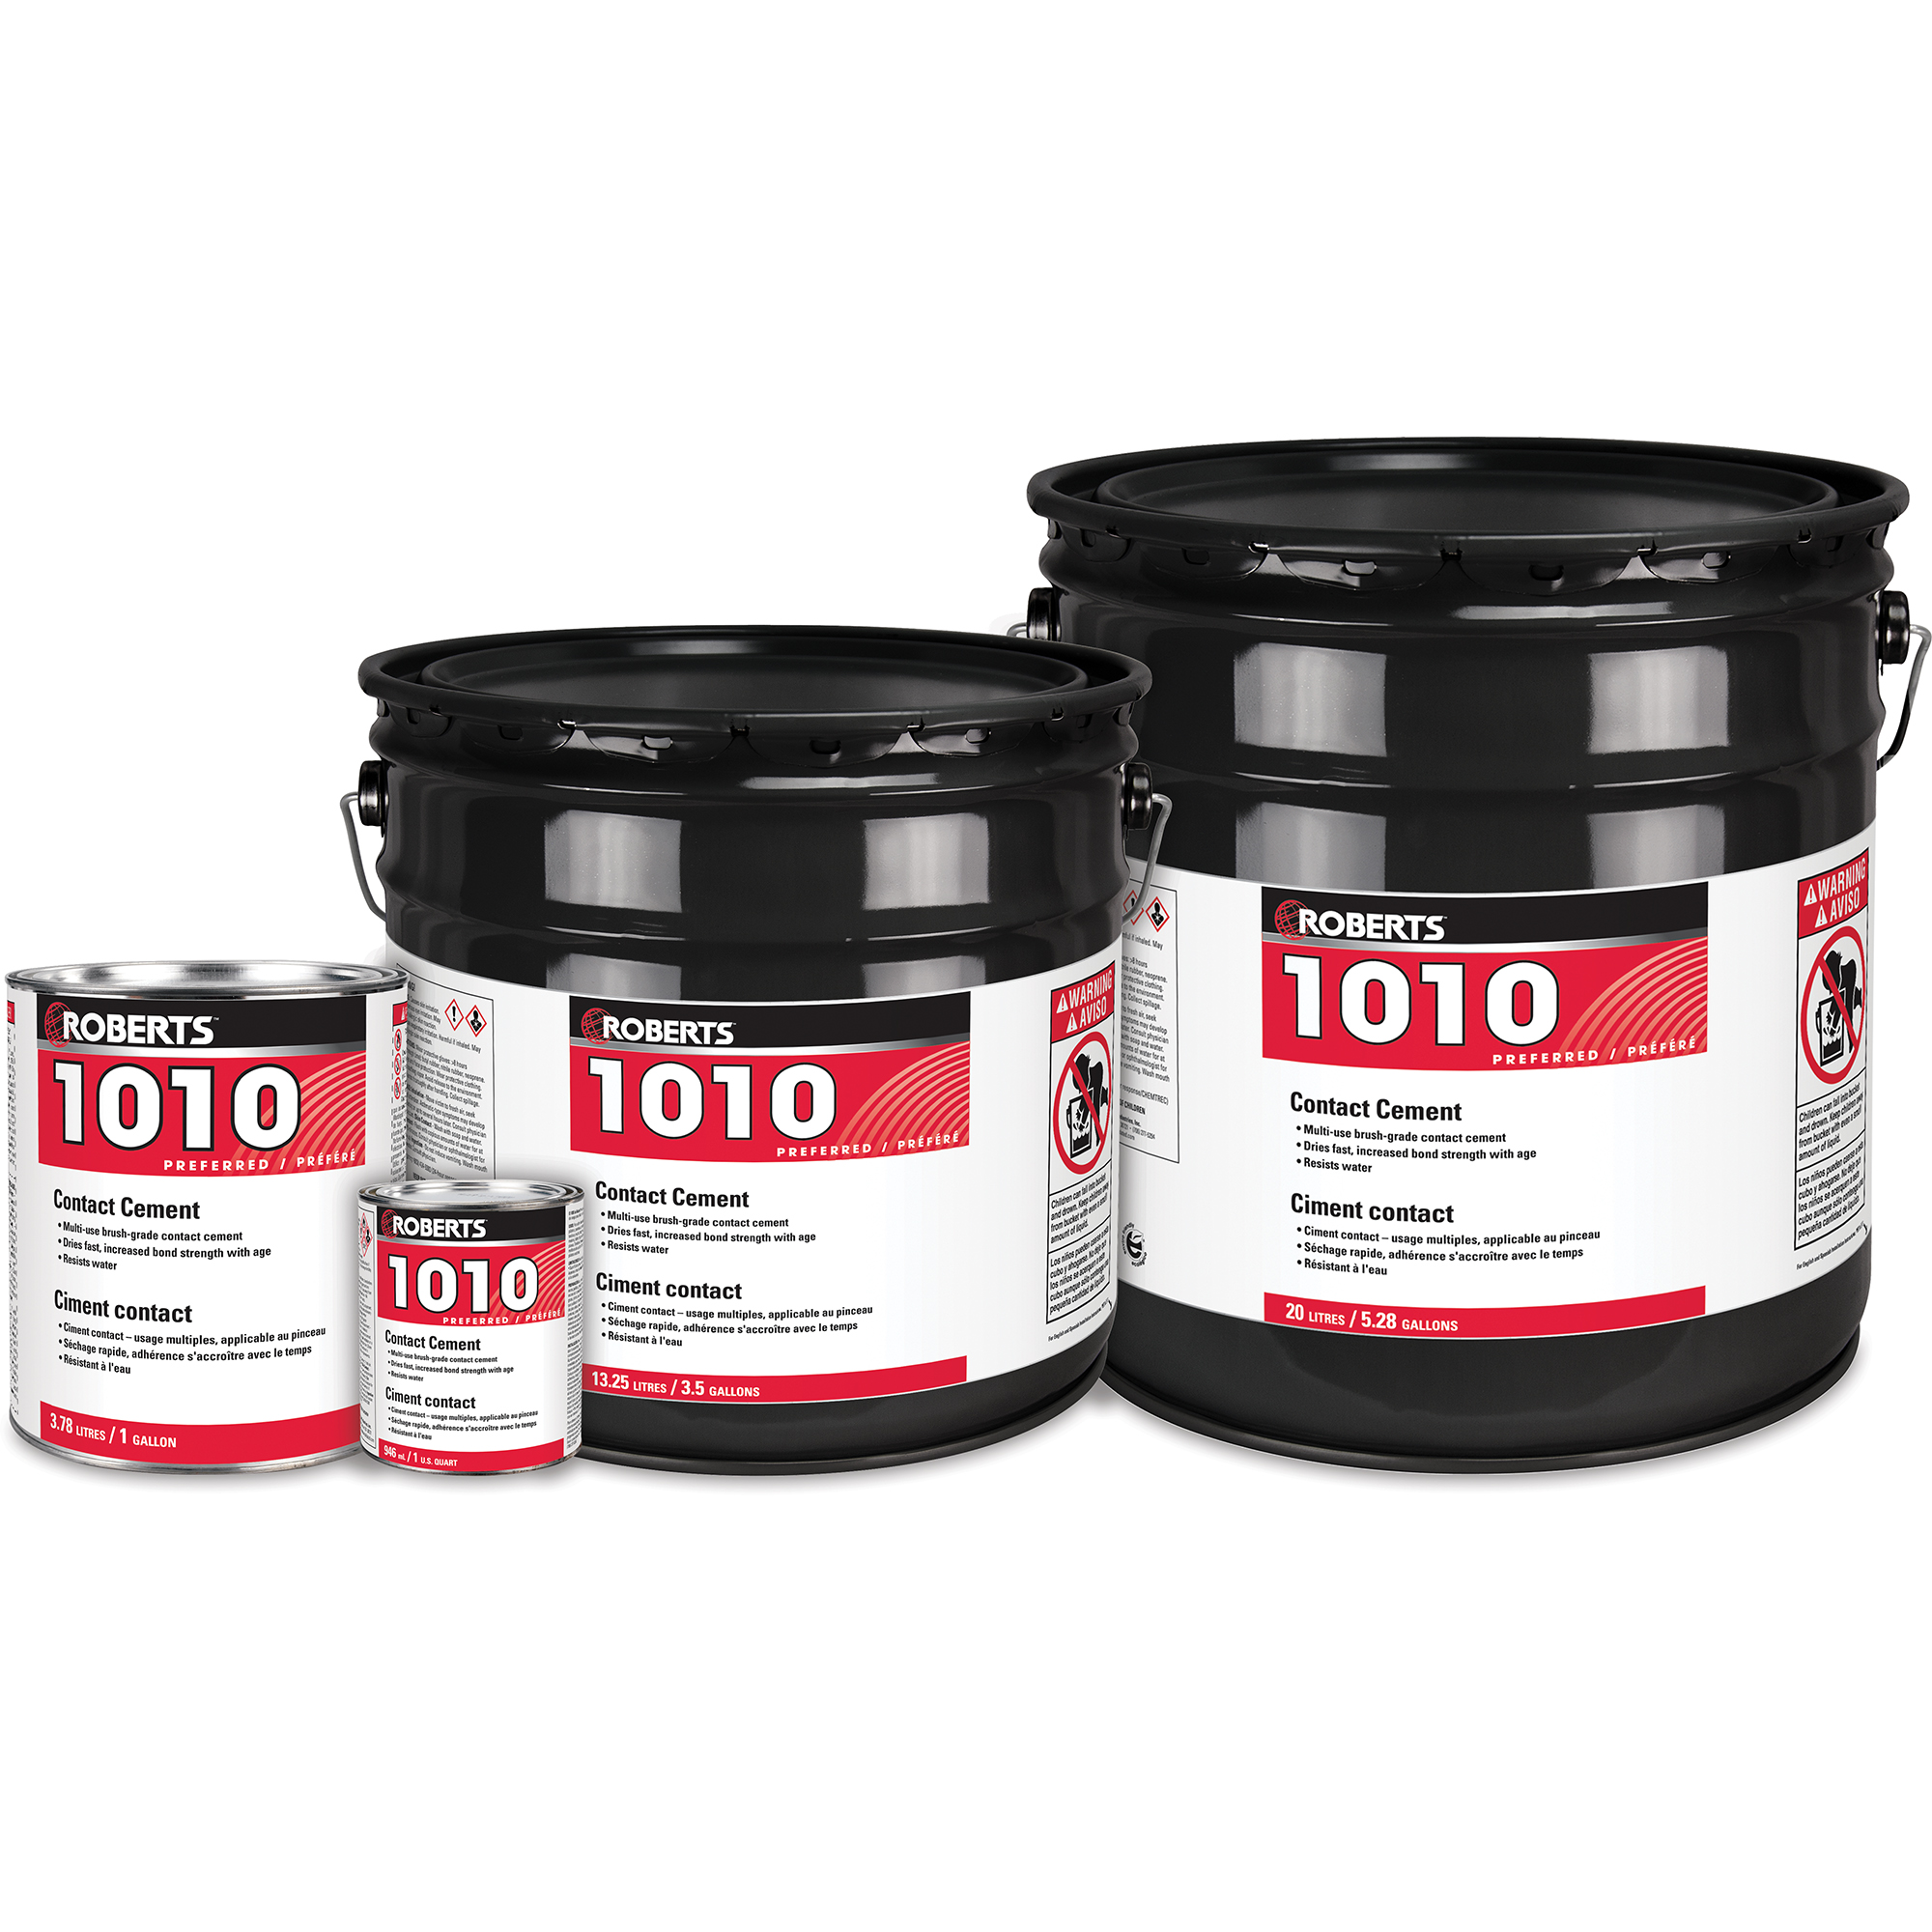 <br><em>(DISCONTINUED)</em></br>Contact Cement